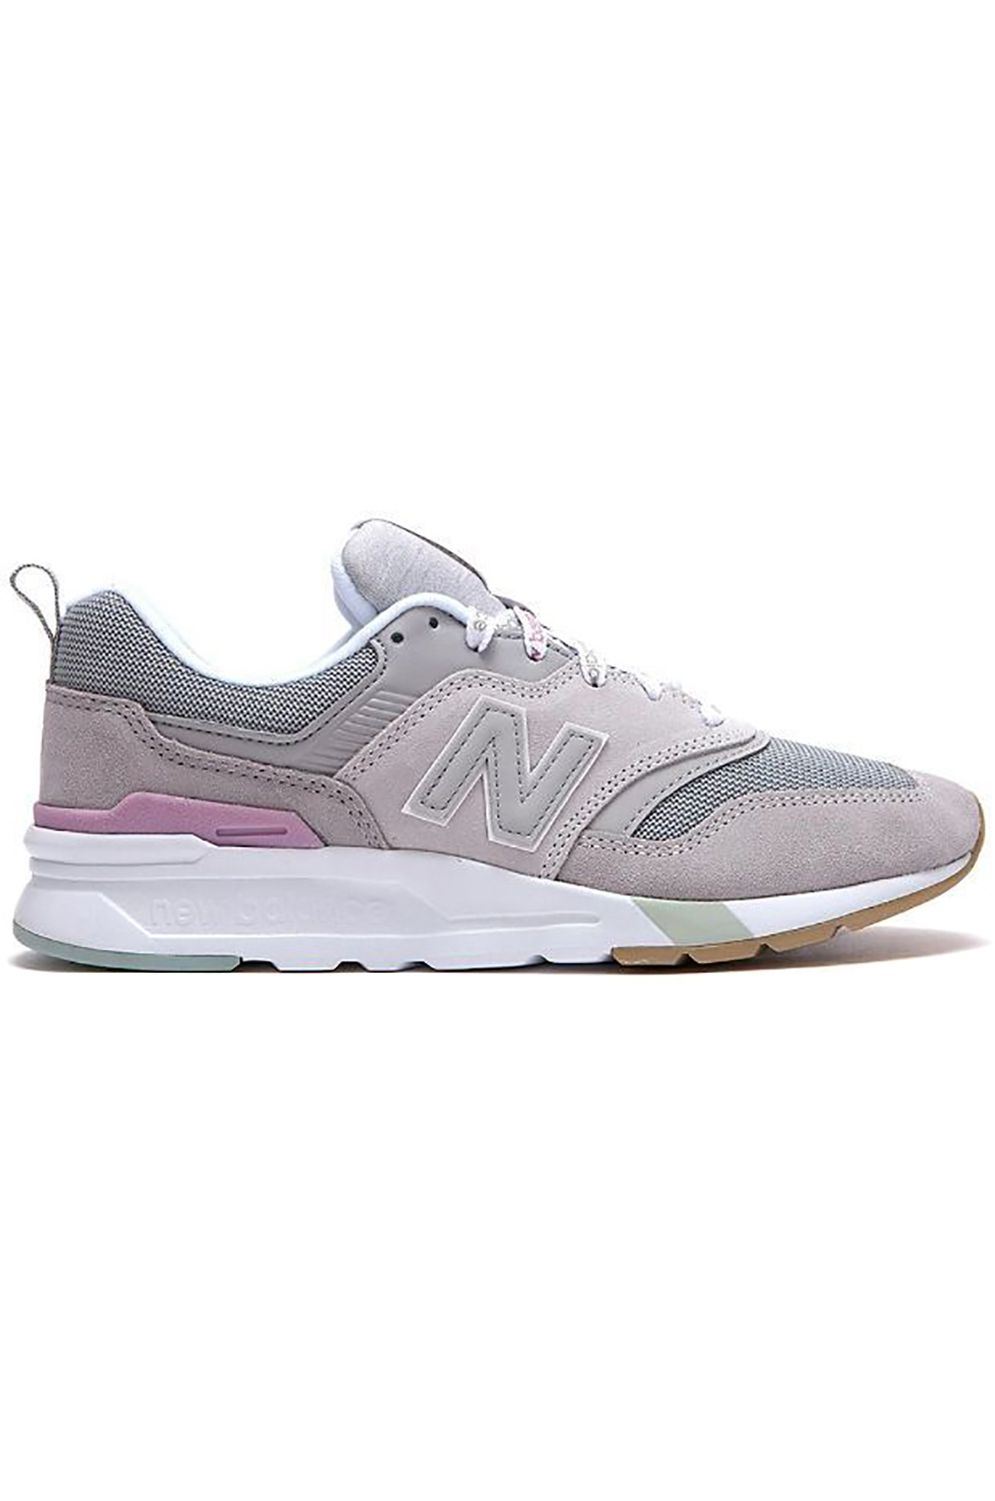 Tenis New Balance CW997 Light Grey